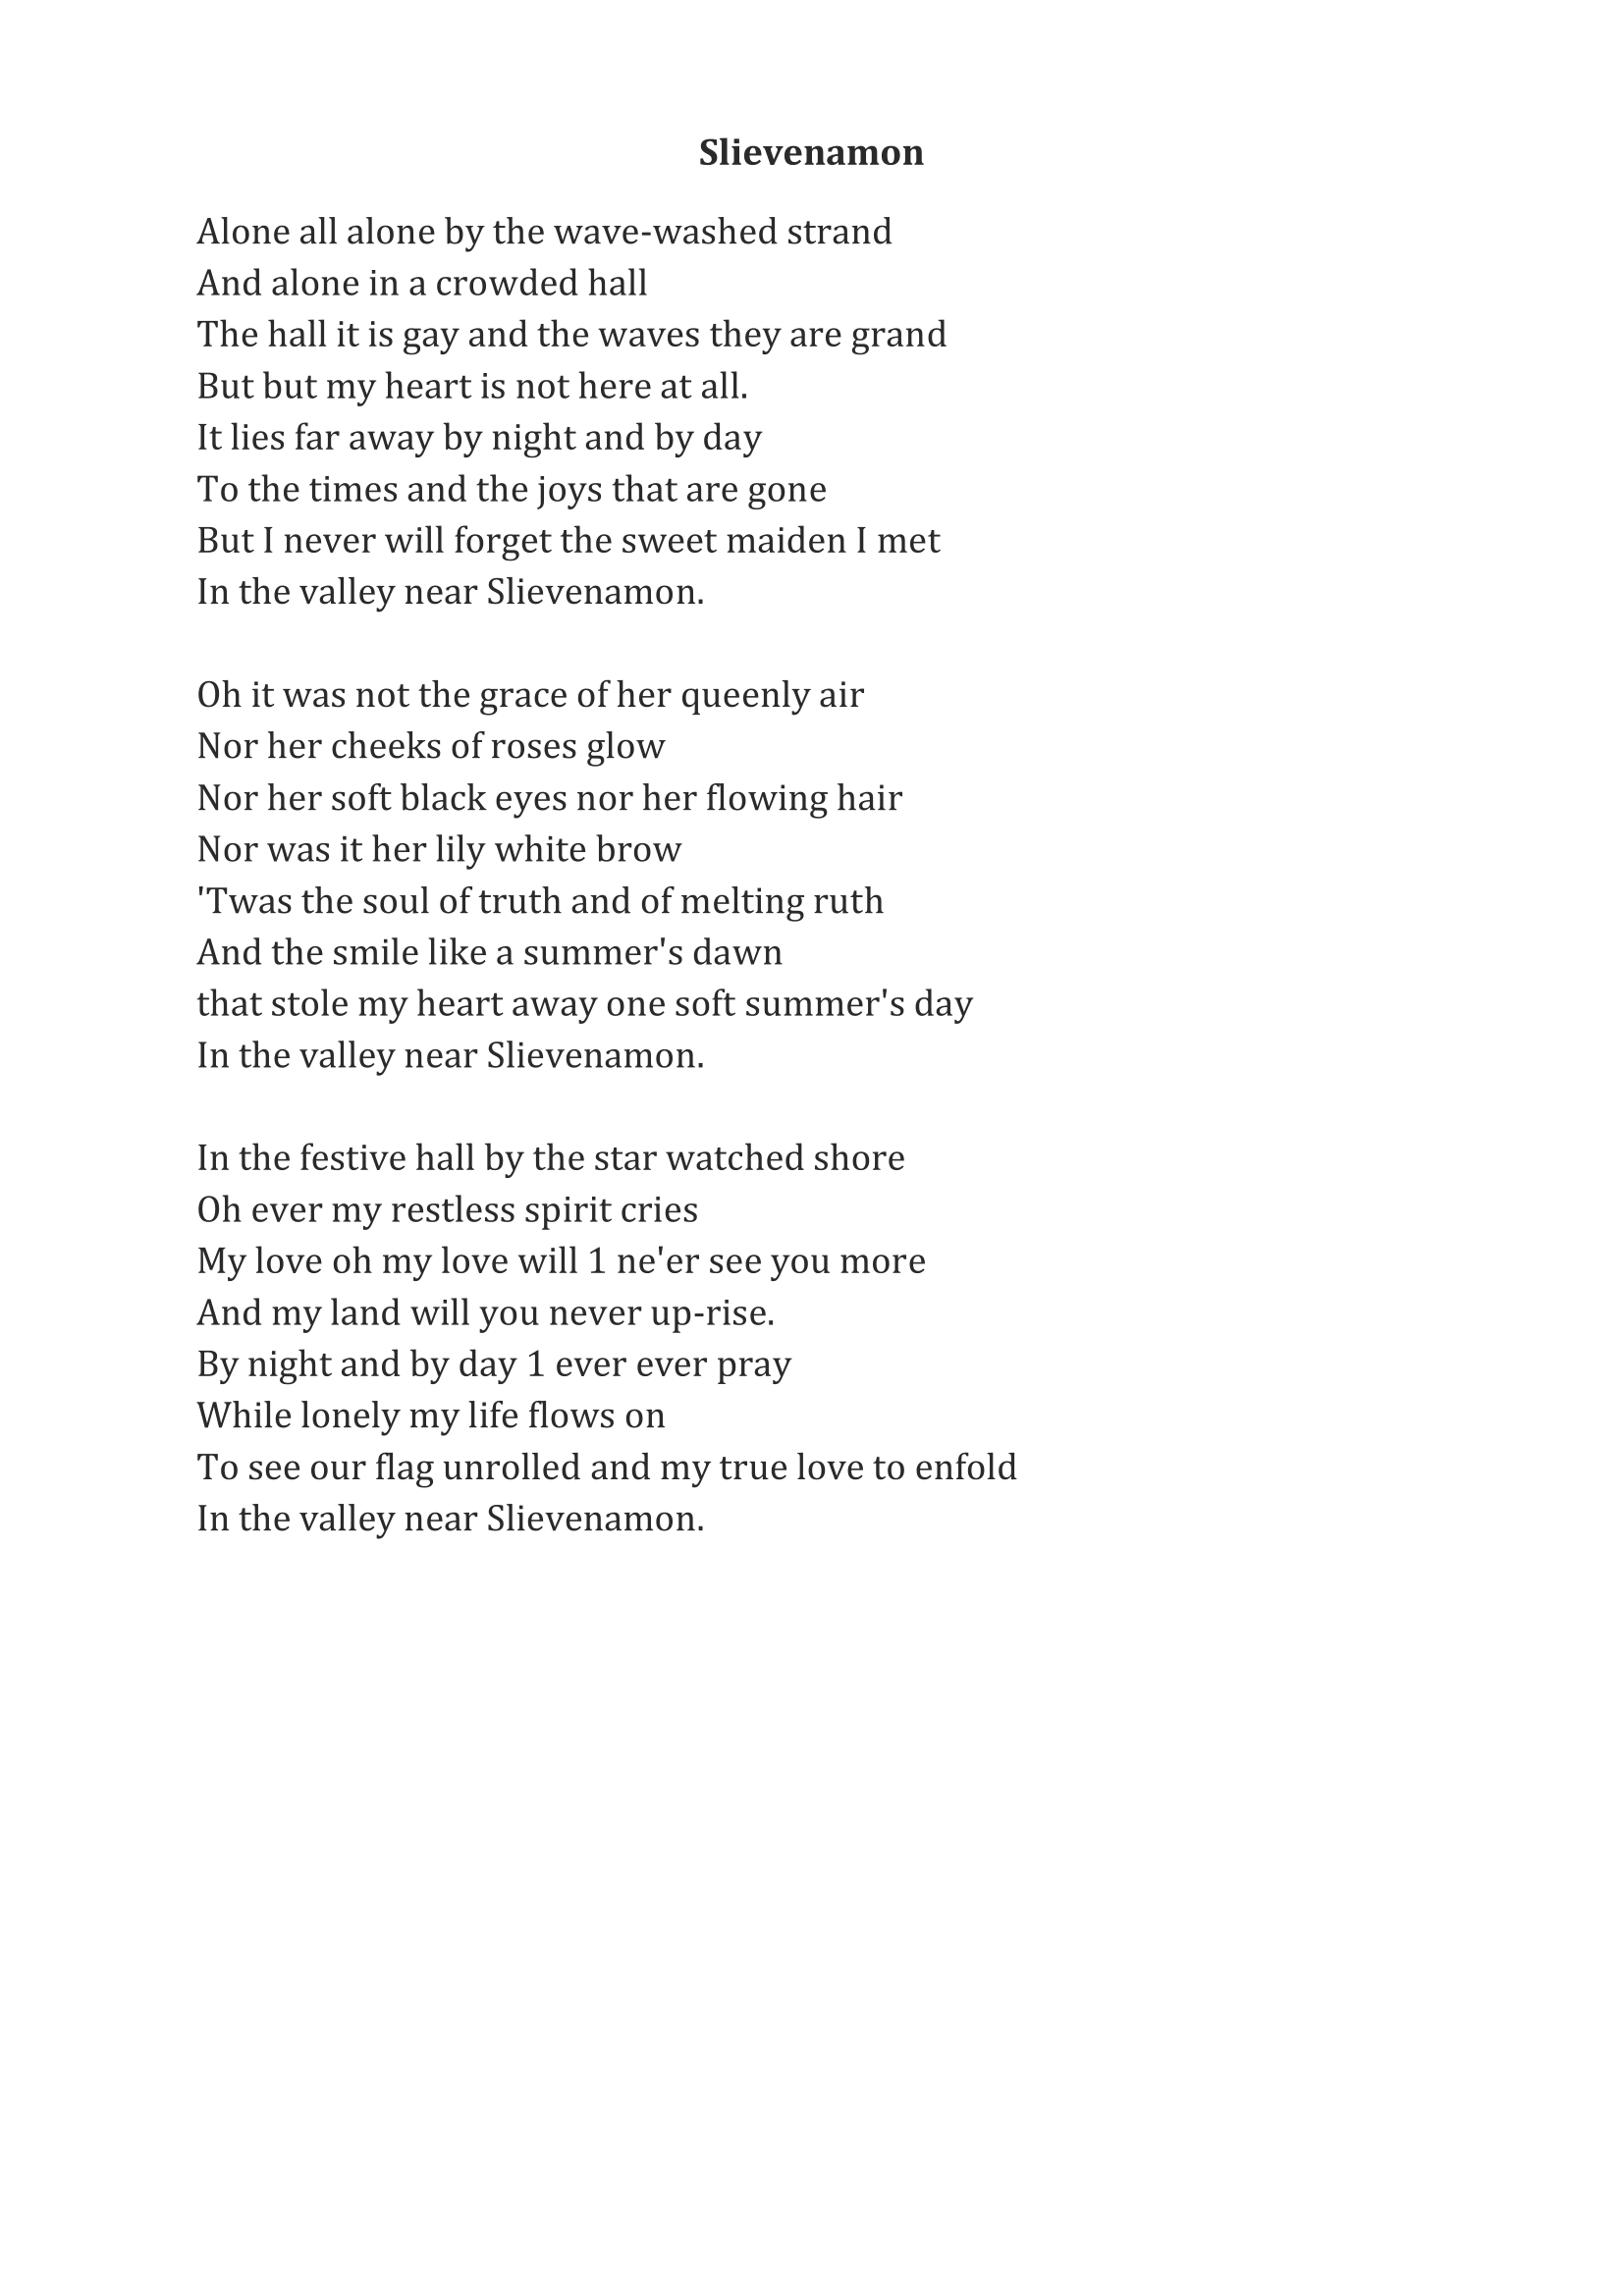 slievenamon-lyrics-1